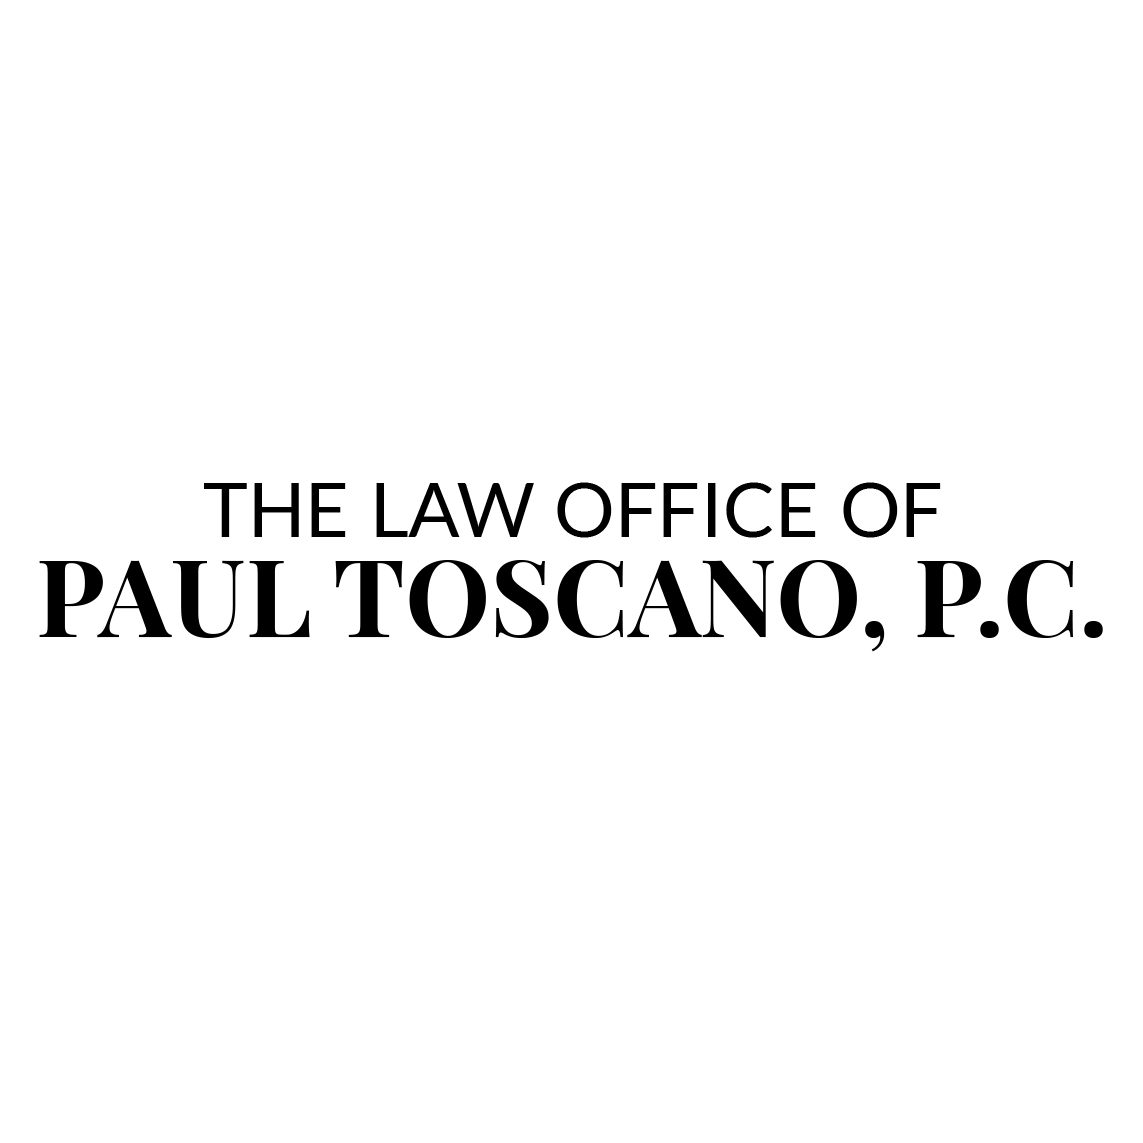 The Law Office of Paul Toscano, P.C.